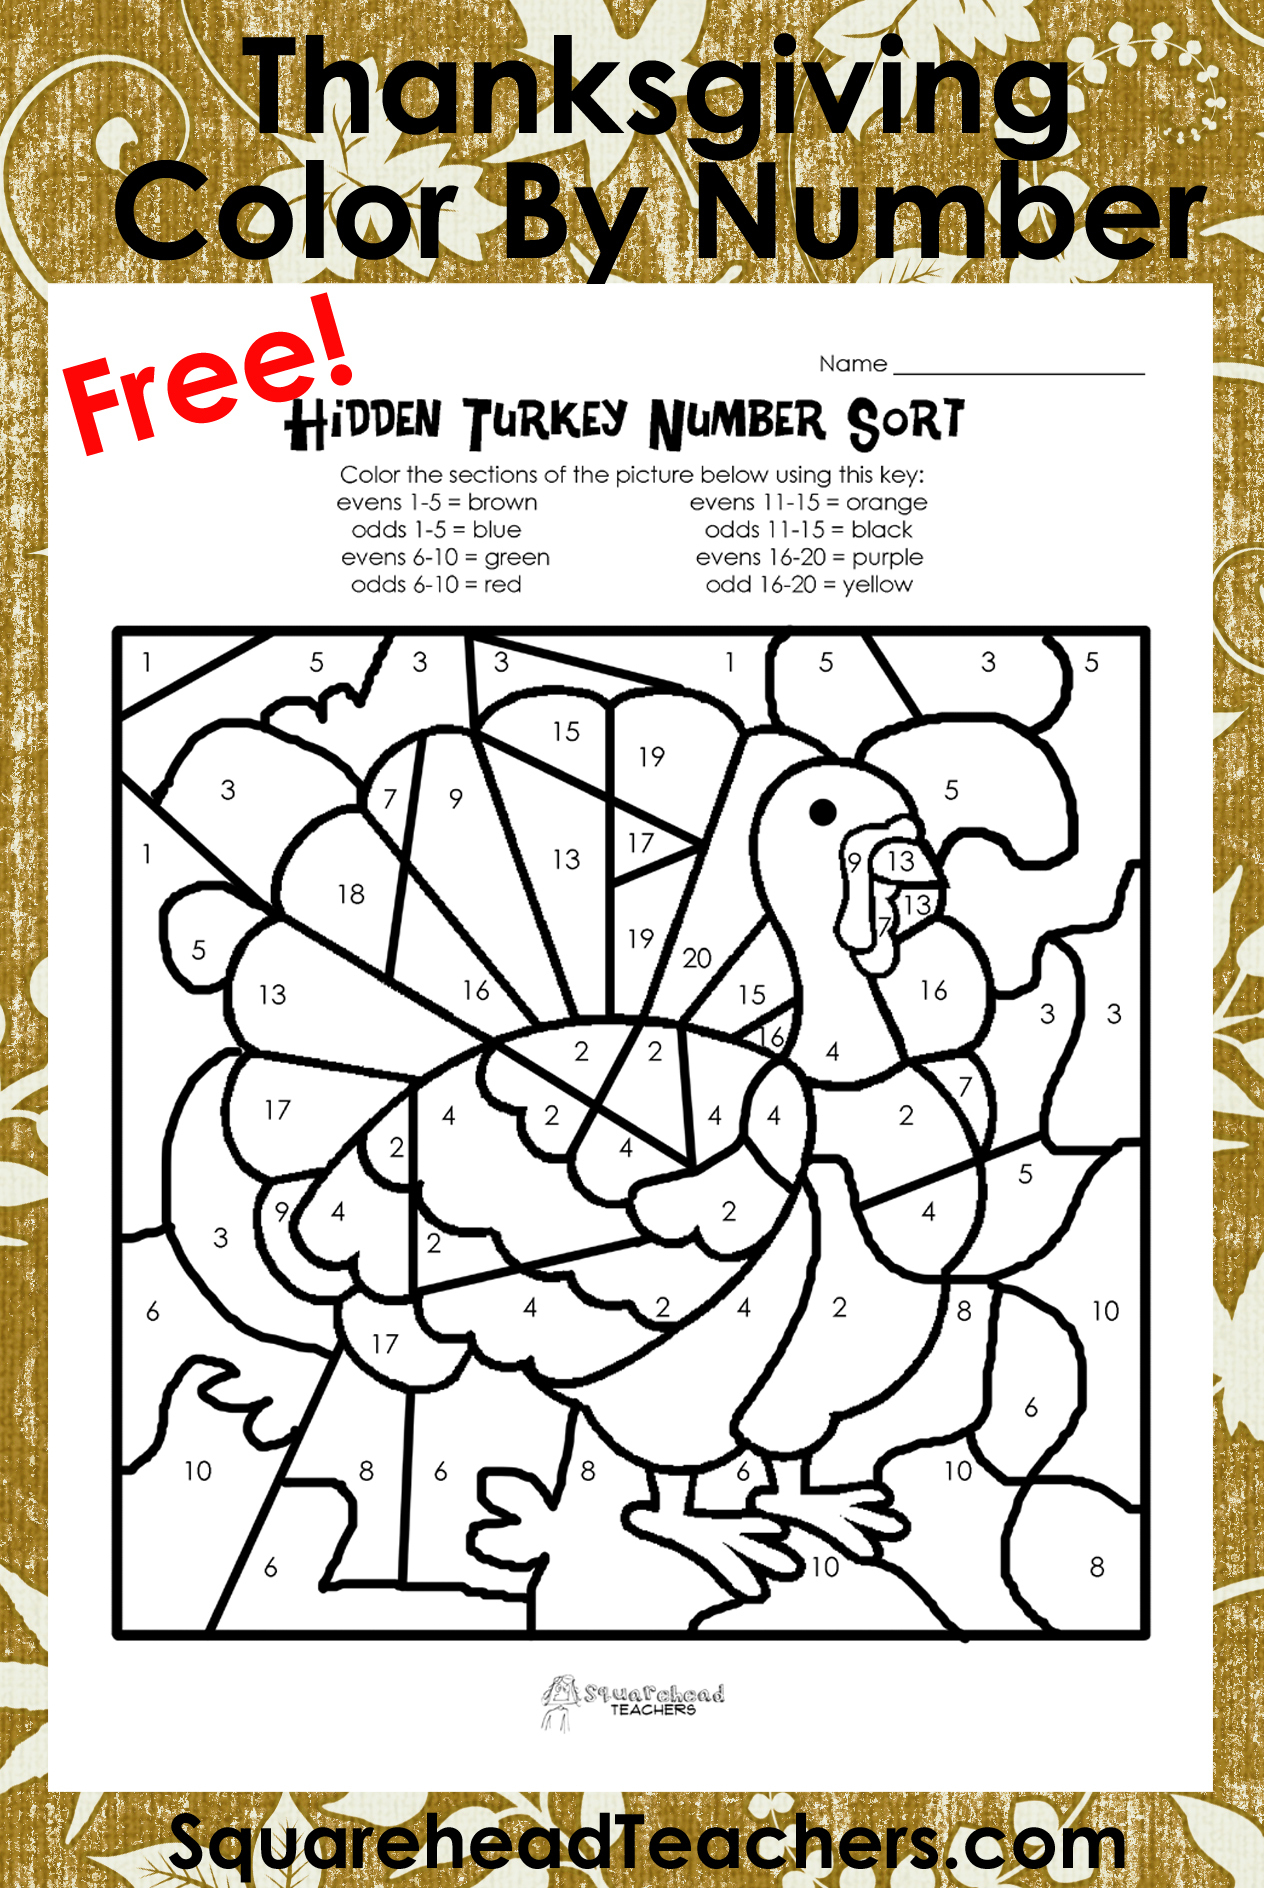 Thanksgiving Colornumber (Odd/evens Sort) | Squarehead Teachers - Math Worksheets Thanksgiving Free Printable